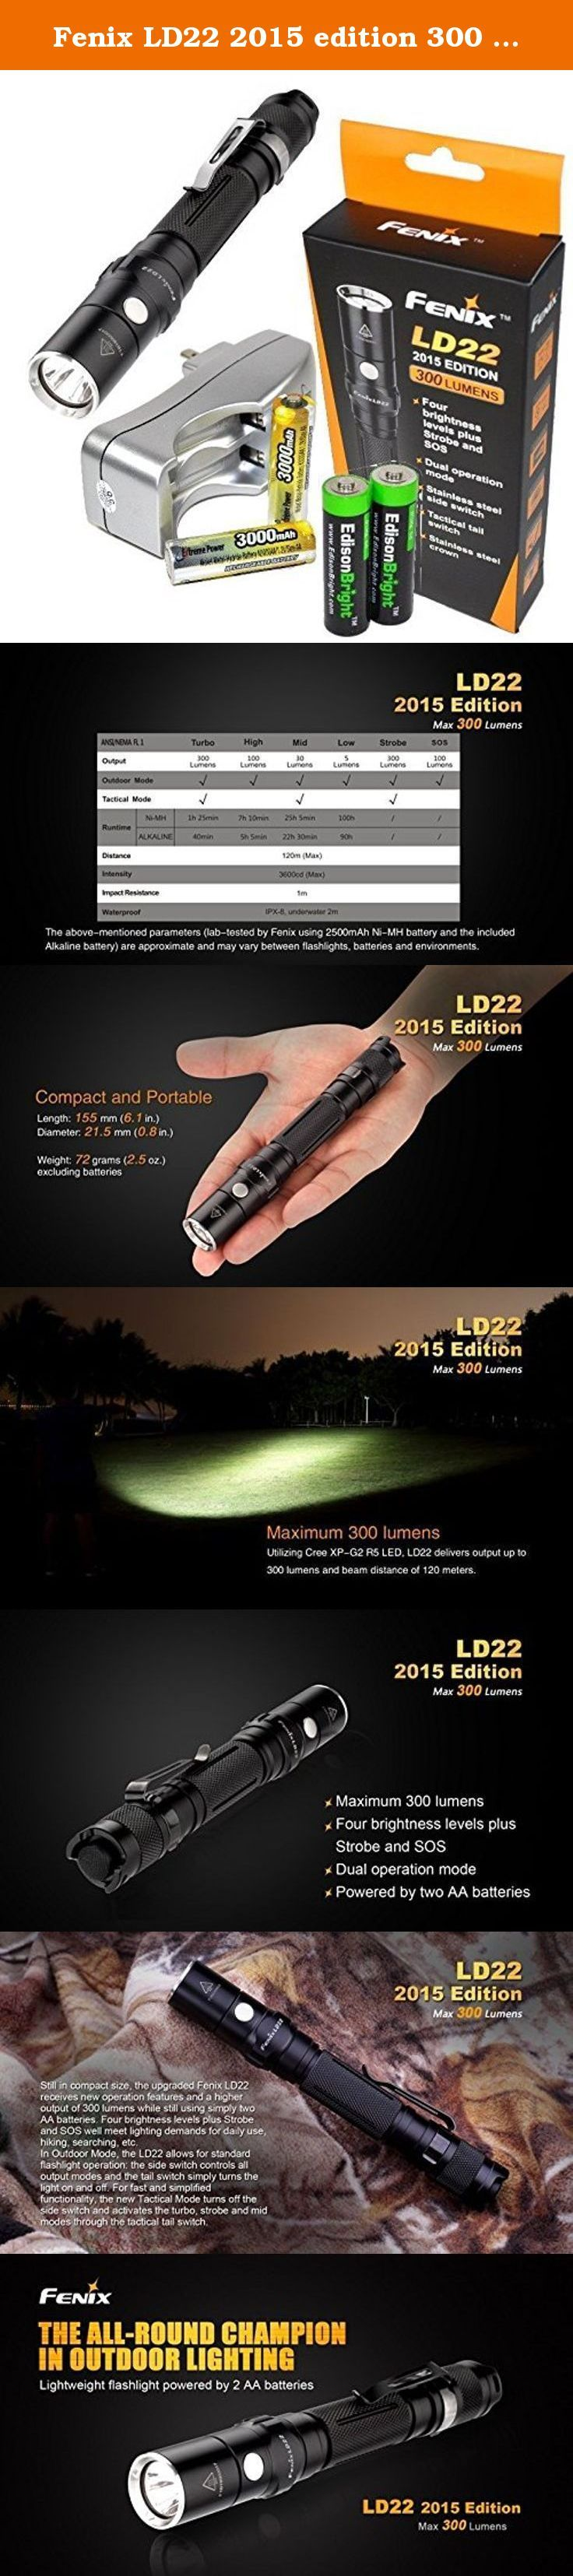 Fenix LD22 2015 edition 300 Lumen XP-G2 R5 LED tactical Flashlight with two NiMH rechargeable AA Batteries, Charger & Two EdisonBright AA Alkaline batteries. Operation: Hold side button for 3 seconds to change Outdoor mode and vice versa Outdoor Mode Turbo: 300 Lumens High: 100 Lumens Mid: 30 Lumens Low: 5 Lumens Strobe: 300 Lumens SOS: 100 Lumens Tactical Mode Turbo: 300 Lumens Mid: 30 Lumens Strobe: 300 Lumens Features ·Uses Cree XP-G2 R5 LED with a lifespan of 50,000 hours ·Powered by…